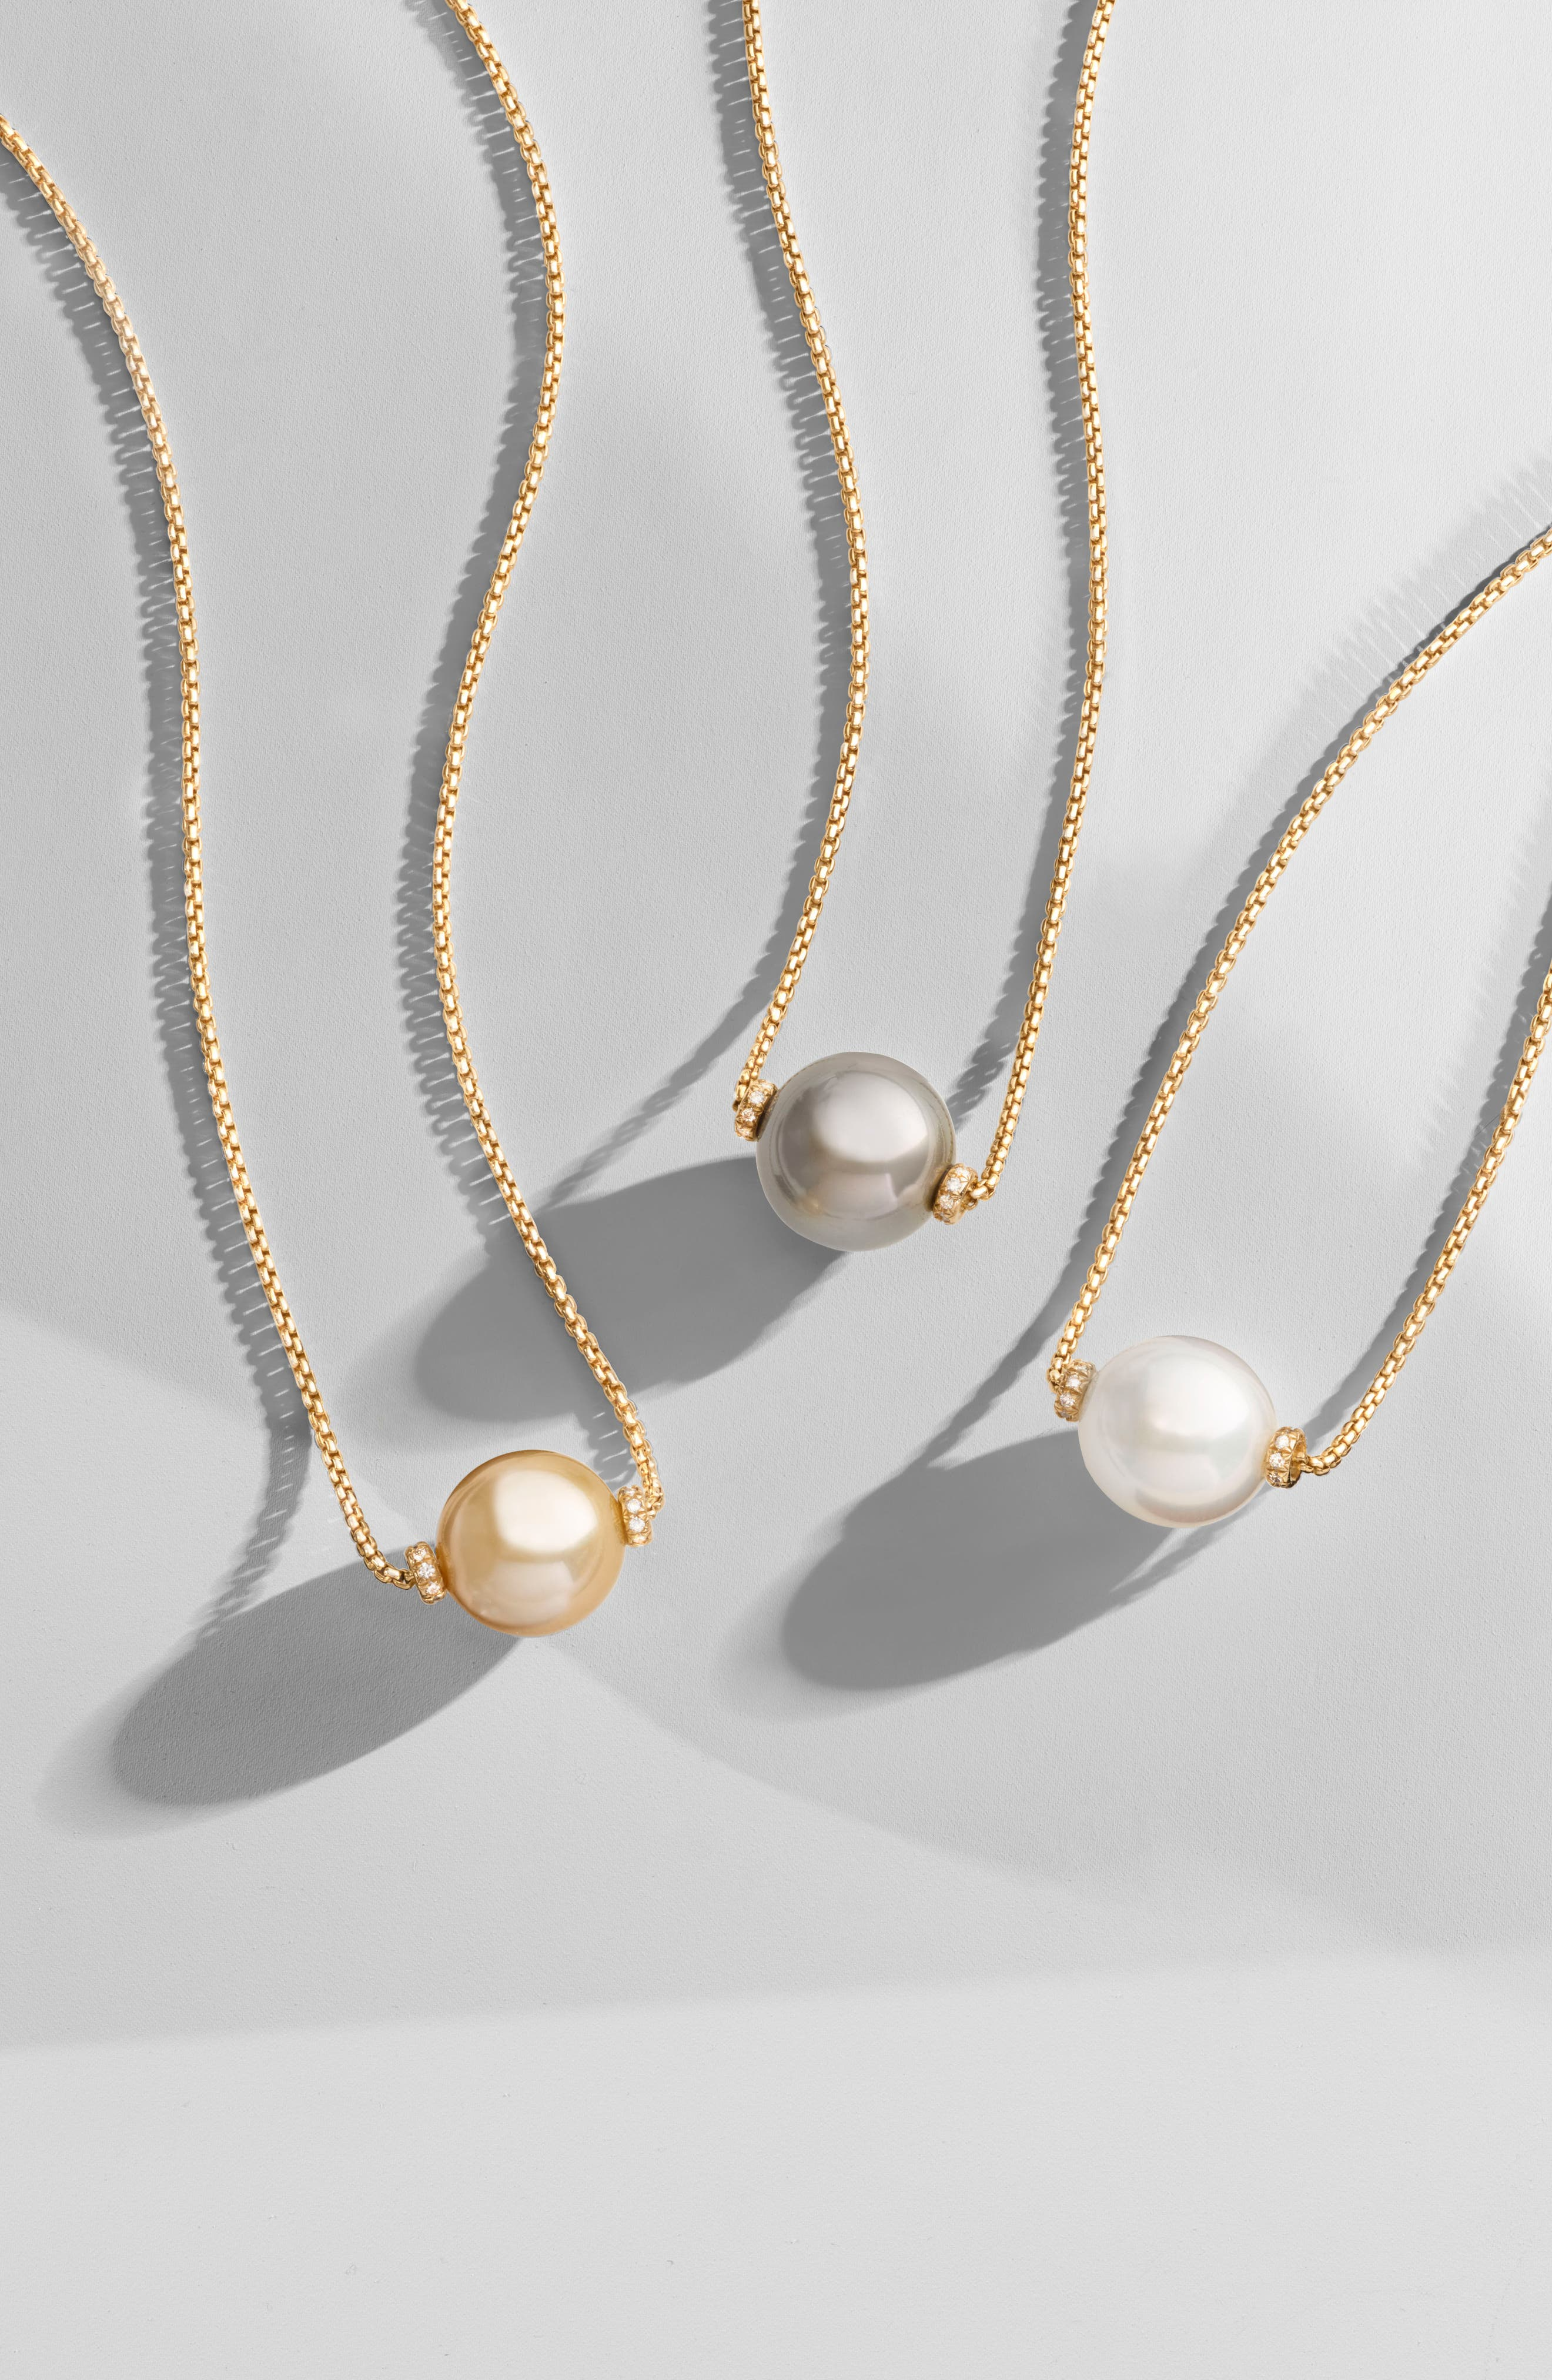 Solari Pearl Station Necklace,                             Alternate thumbnail 3, color,                             YELLOW GOLD/ SOUTH SEA WHITE